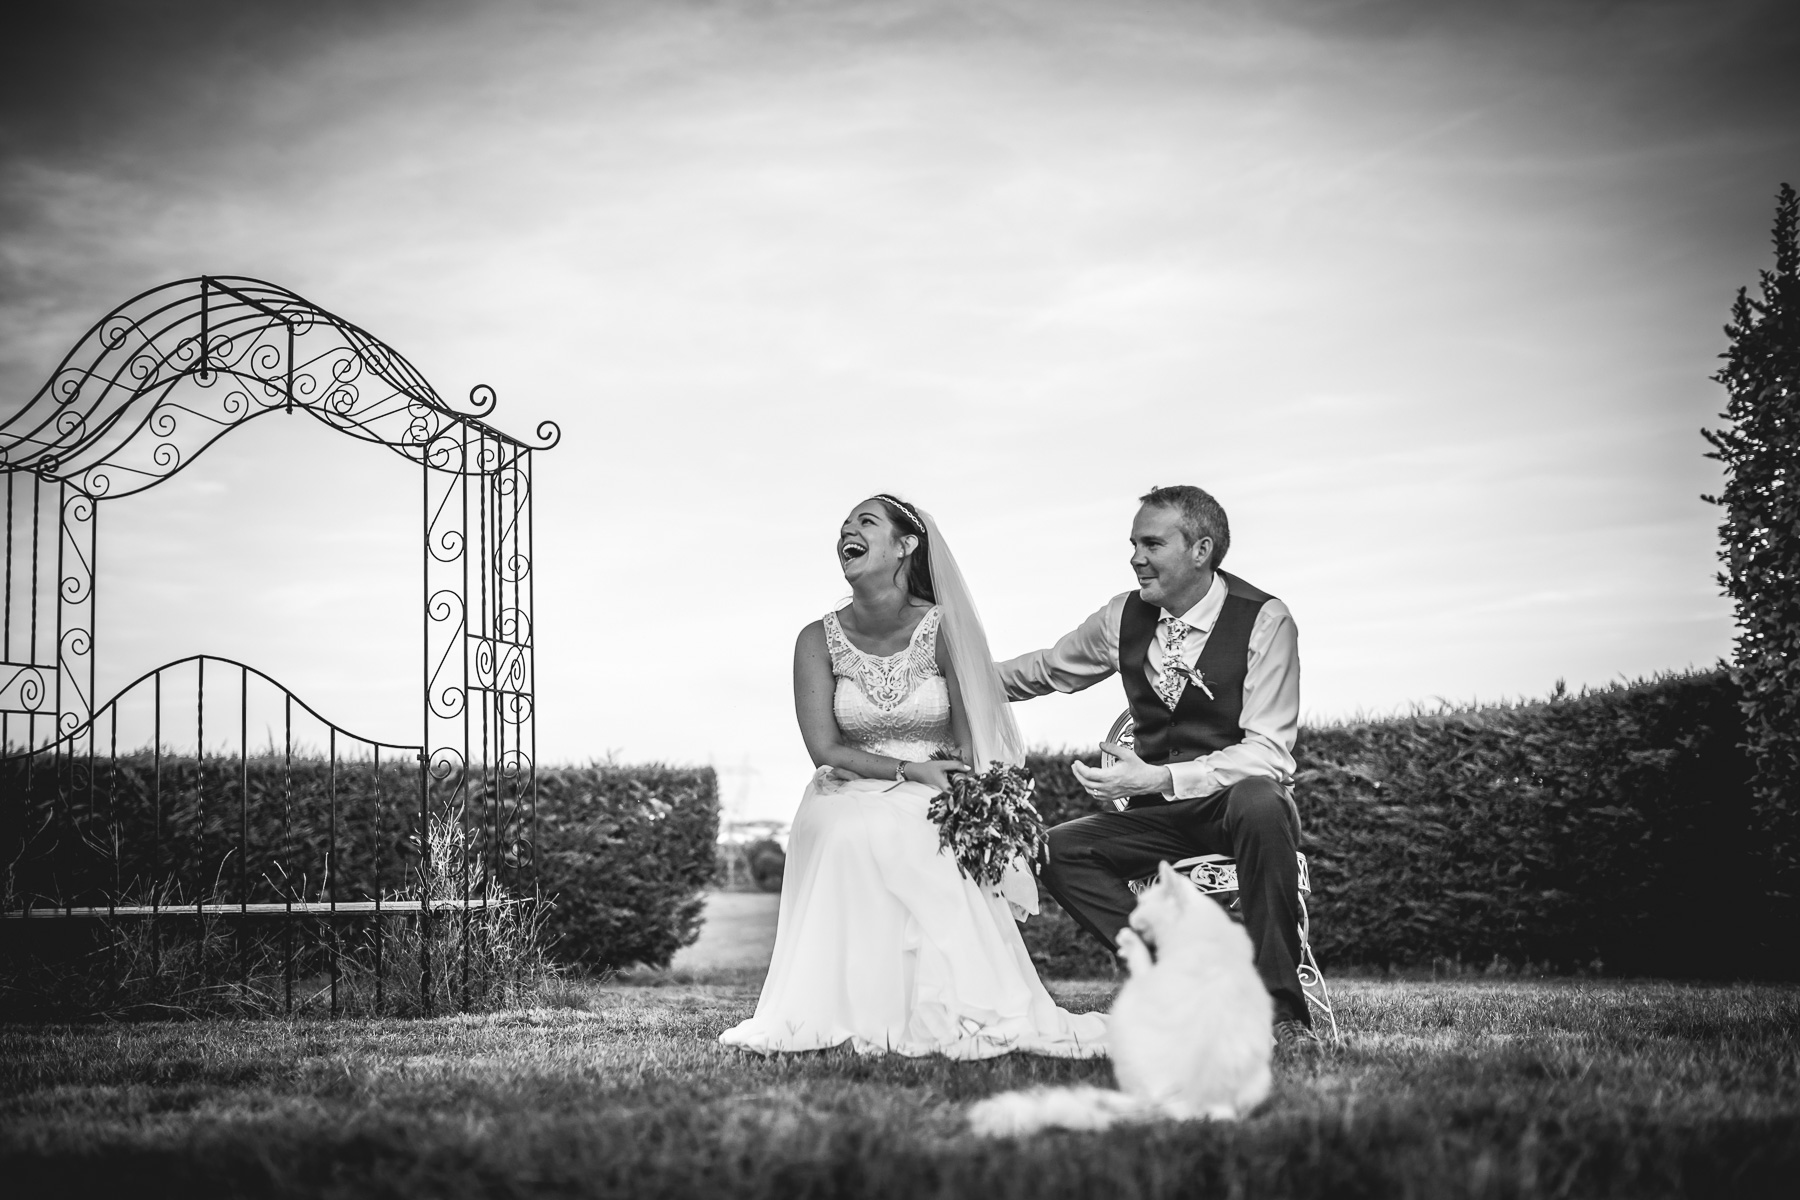 destination wedding photography - u got the love wedding photography-393783.jpg